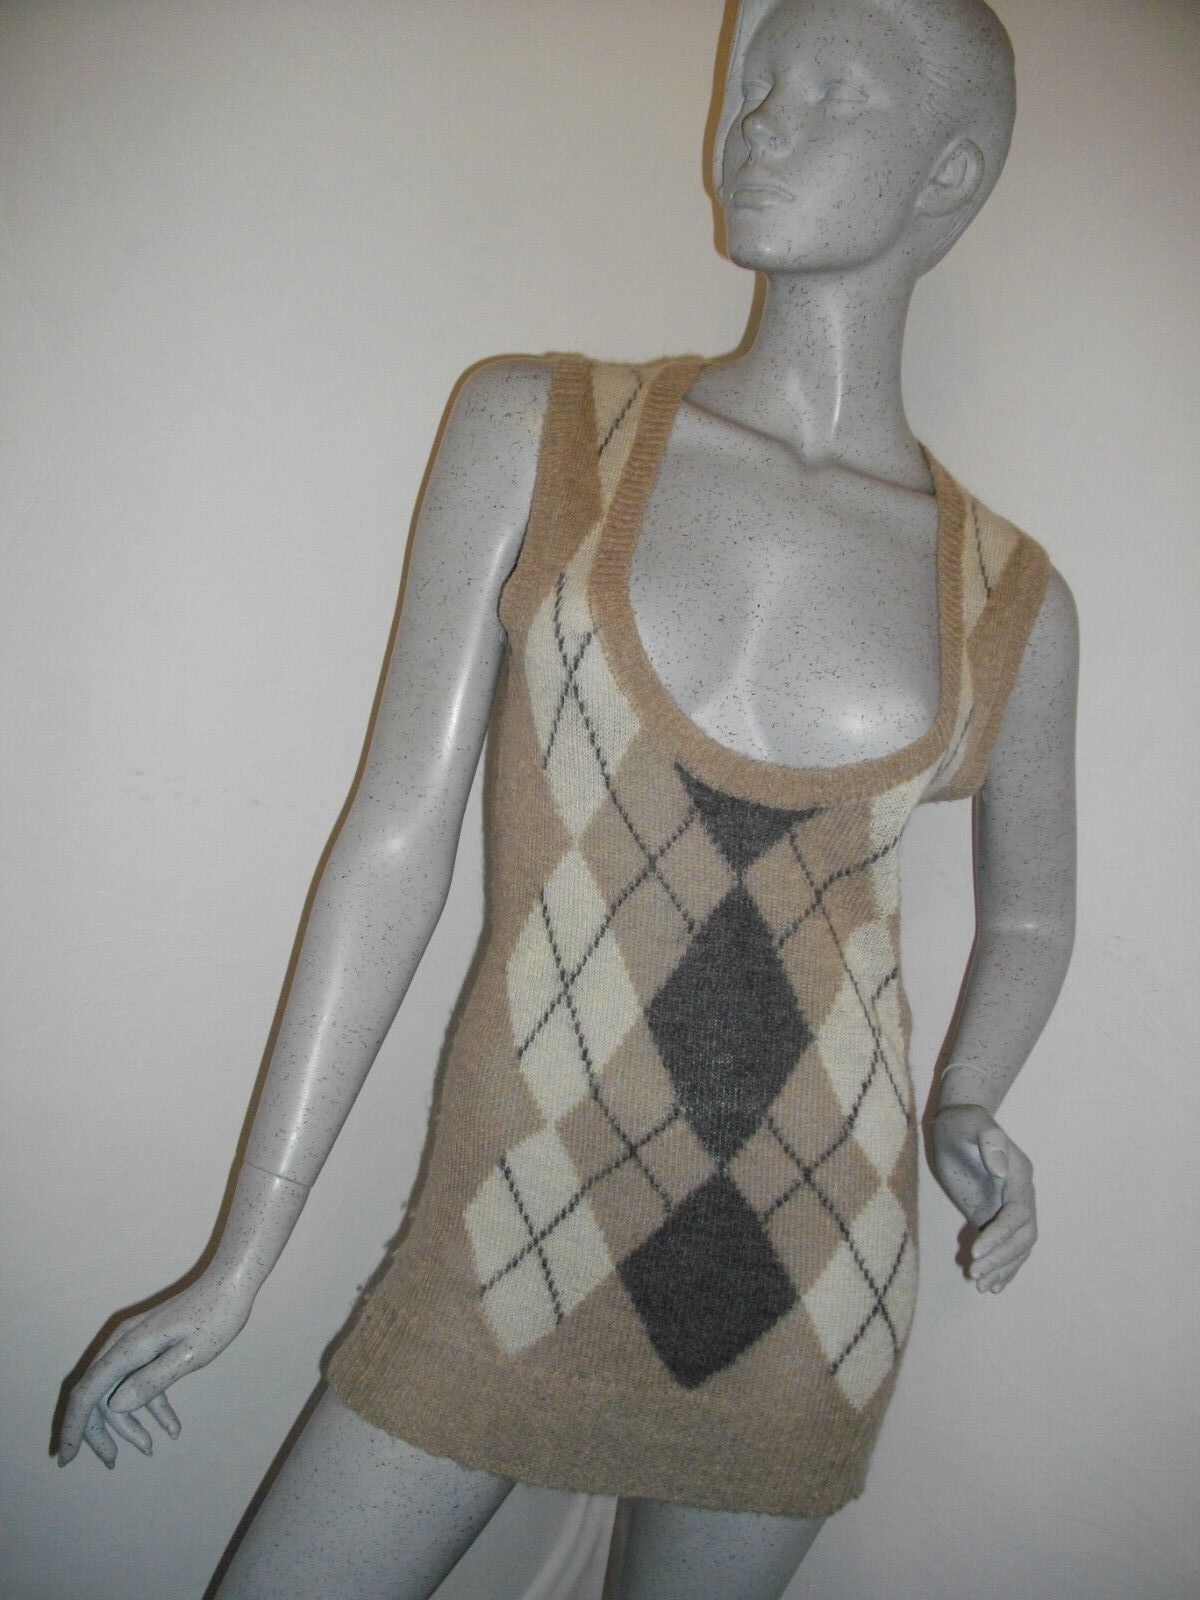 NEW  MARC O'POLO  MOHAIR MIX EXTRA LONG SLEEVELESS TOP   DRESS SIZE S RRP